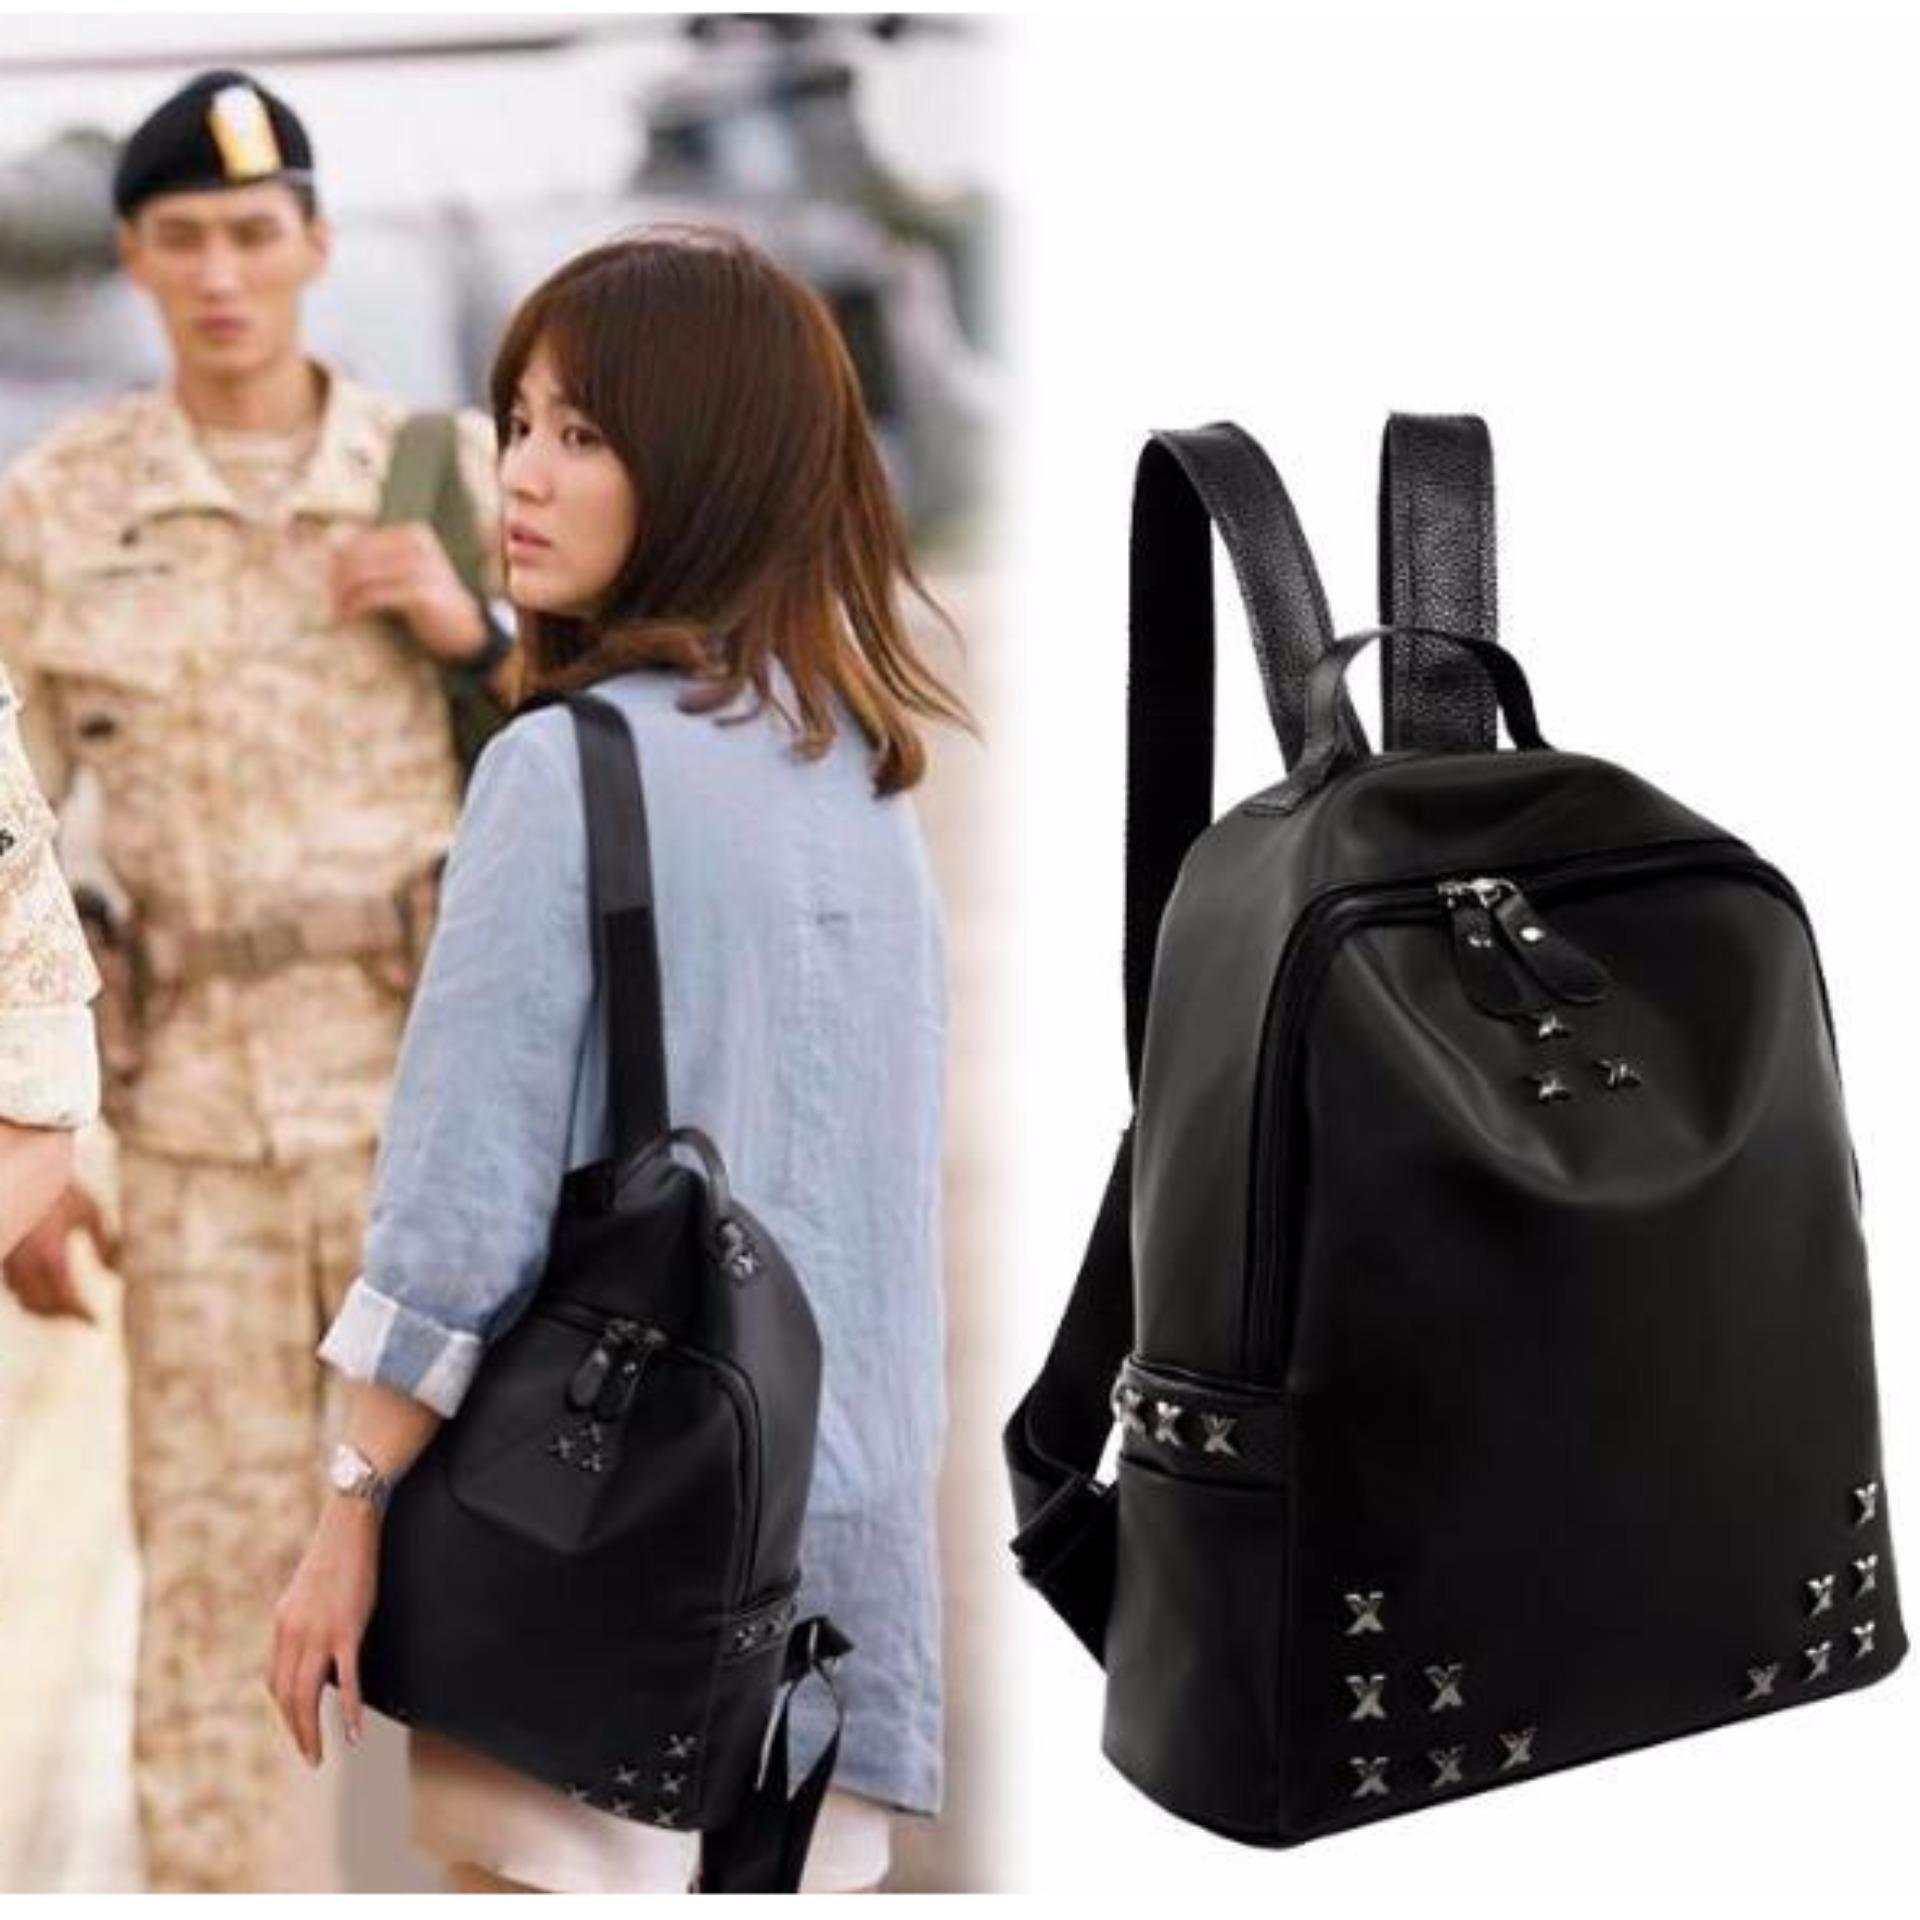 Black Bag Backpack School Bag Descendants Of The Sun Cross